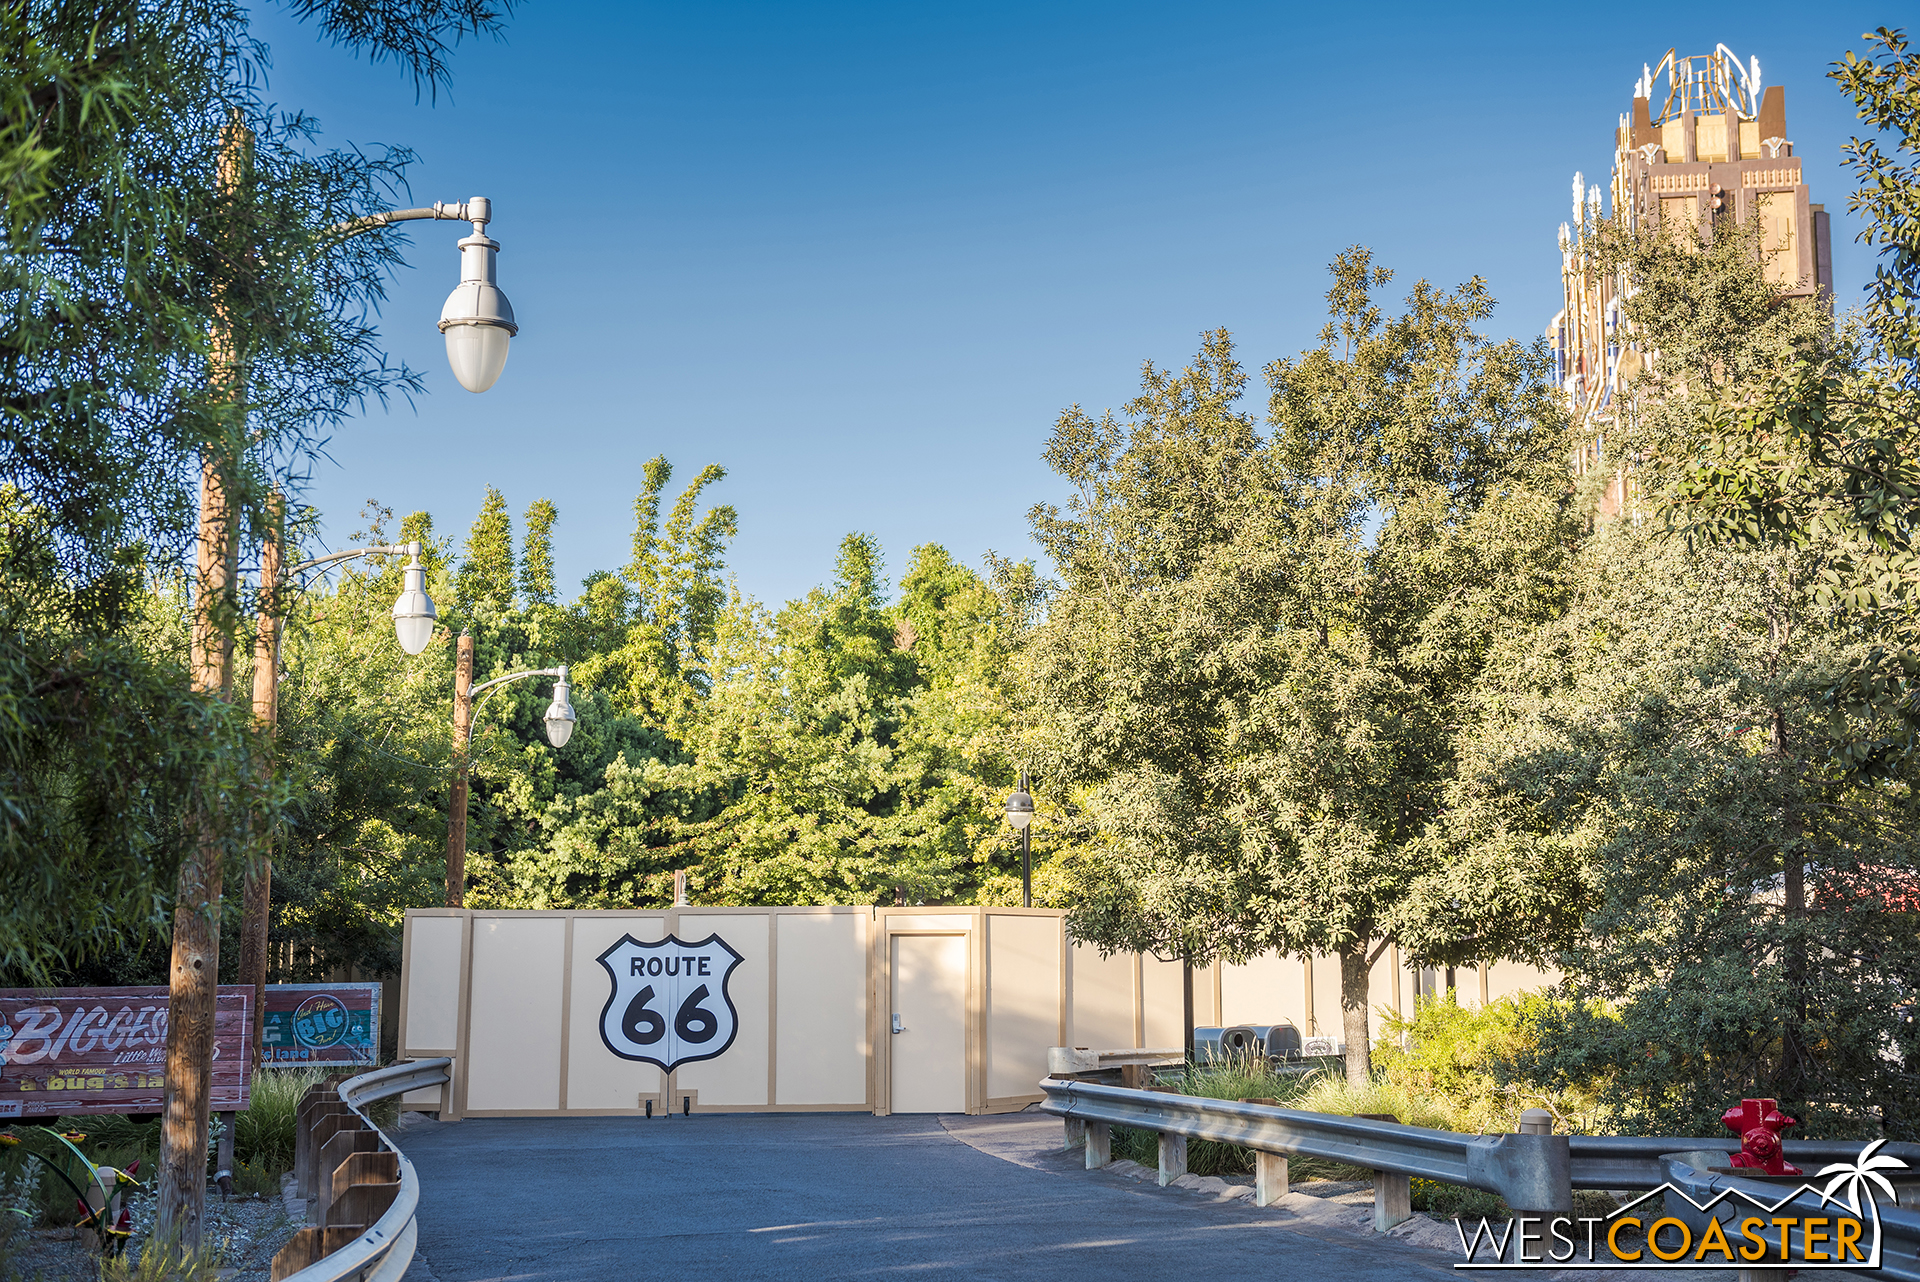 Guess that means Route 66 ends here (and similarly on the other side with Hollywood Land's terminus by Guardians of the Galaxy).